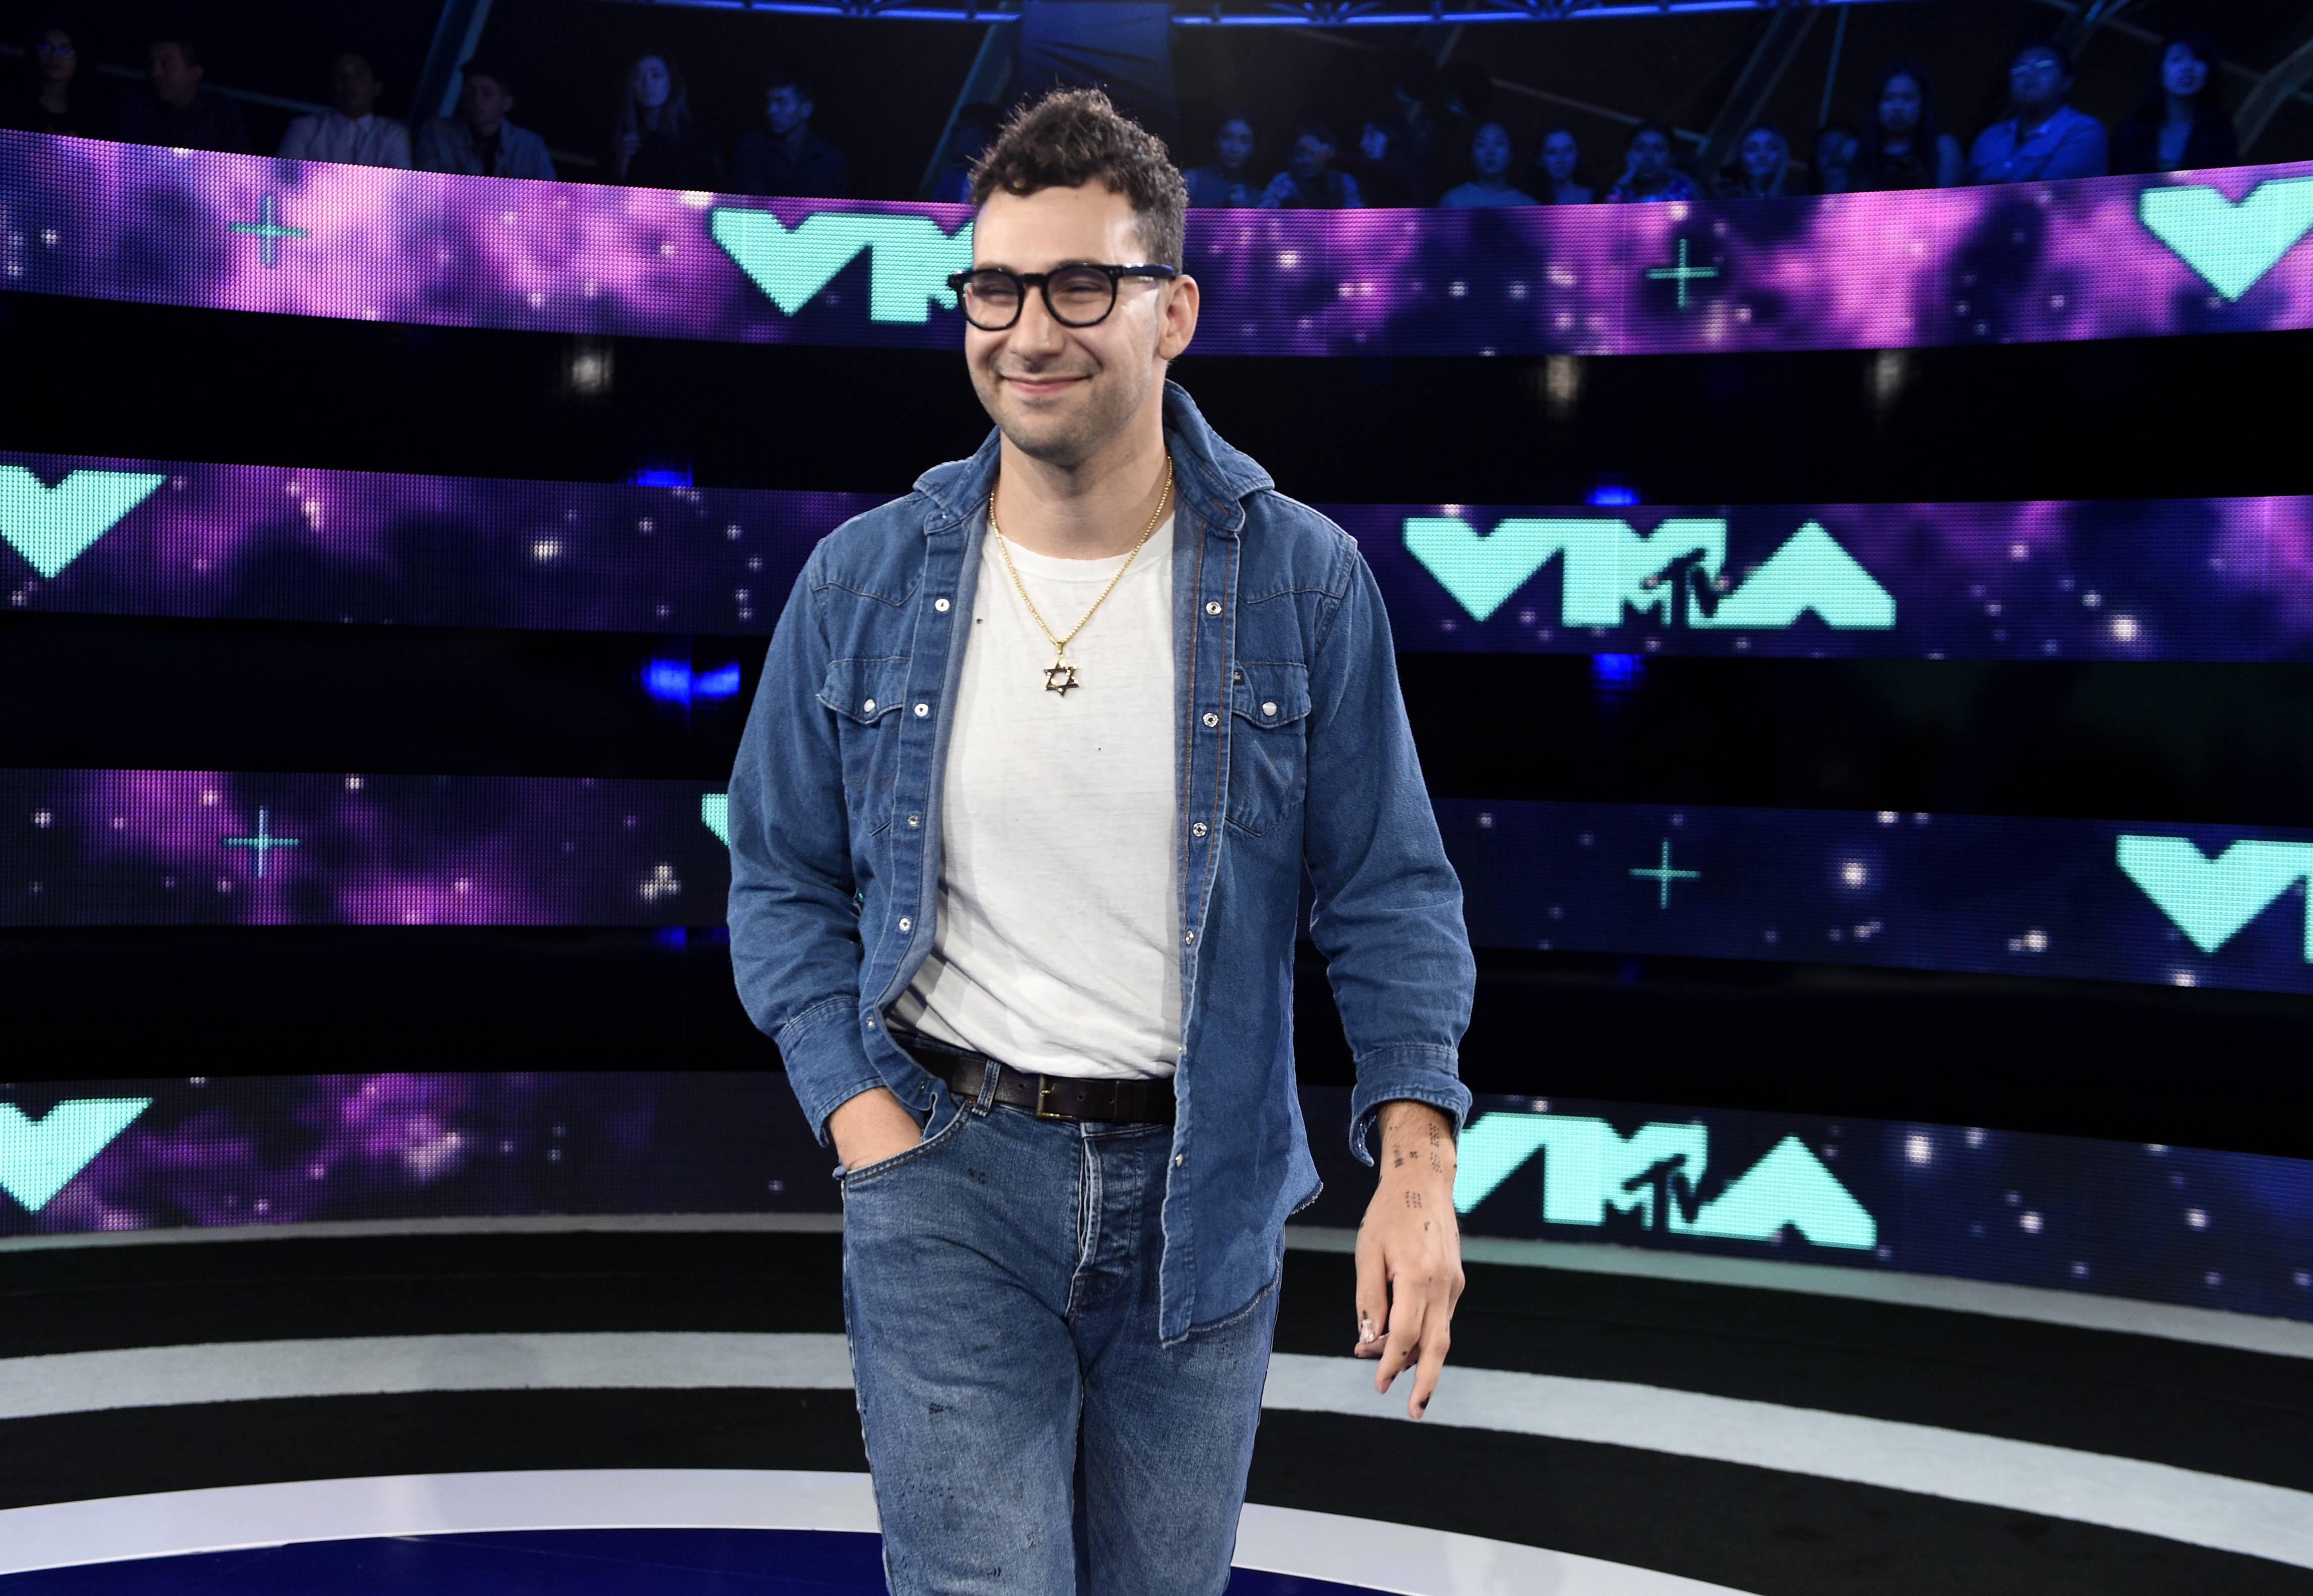 Jack Antonoff arrives at the MTV Video Music Awards at The Forum on Sunday, Aug. 27, 2017, in Inglewood, Calif.